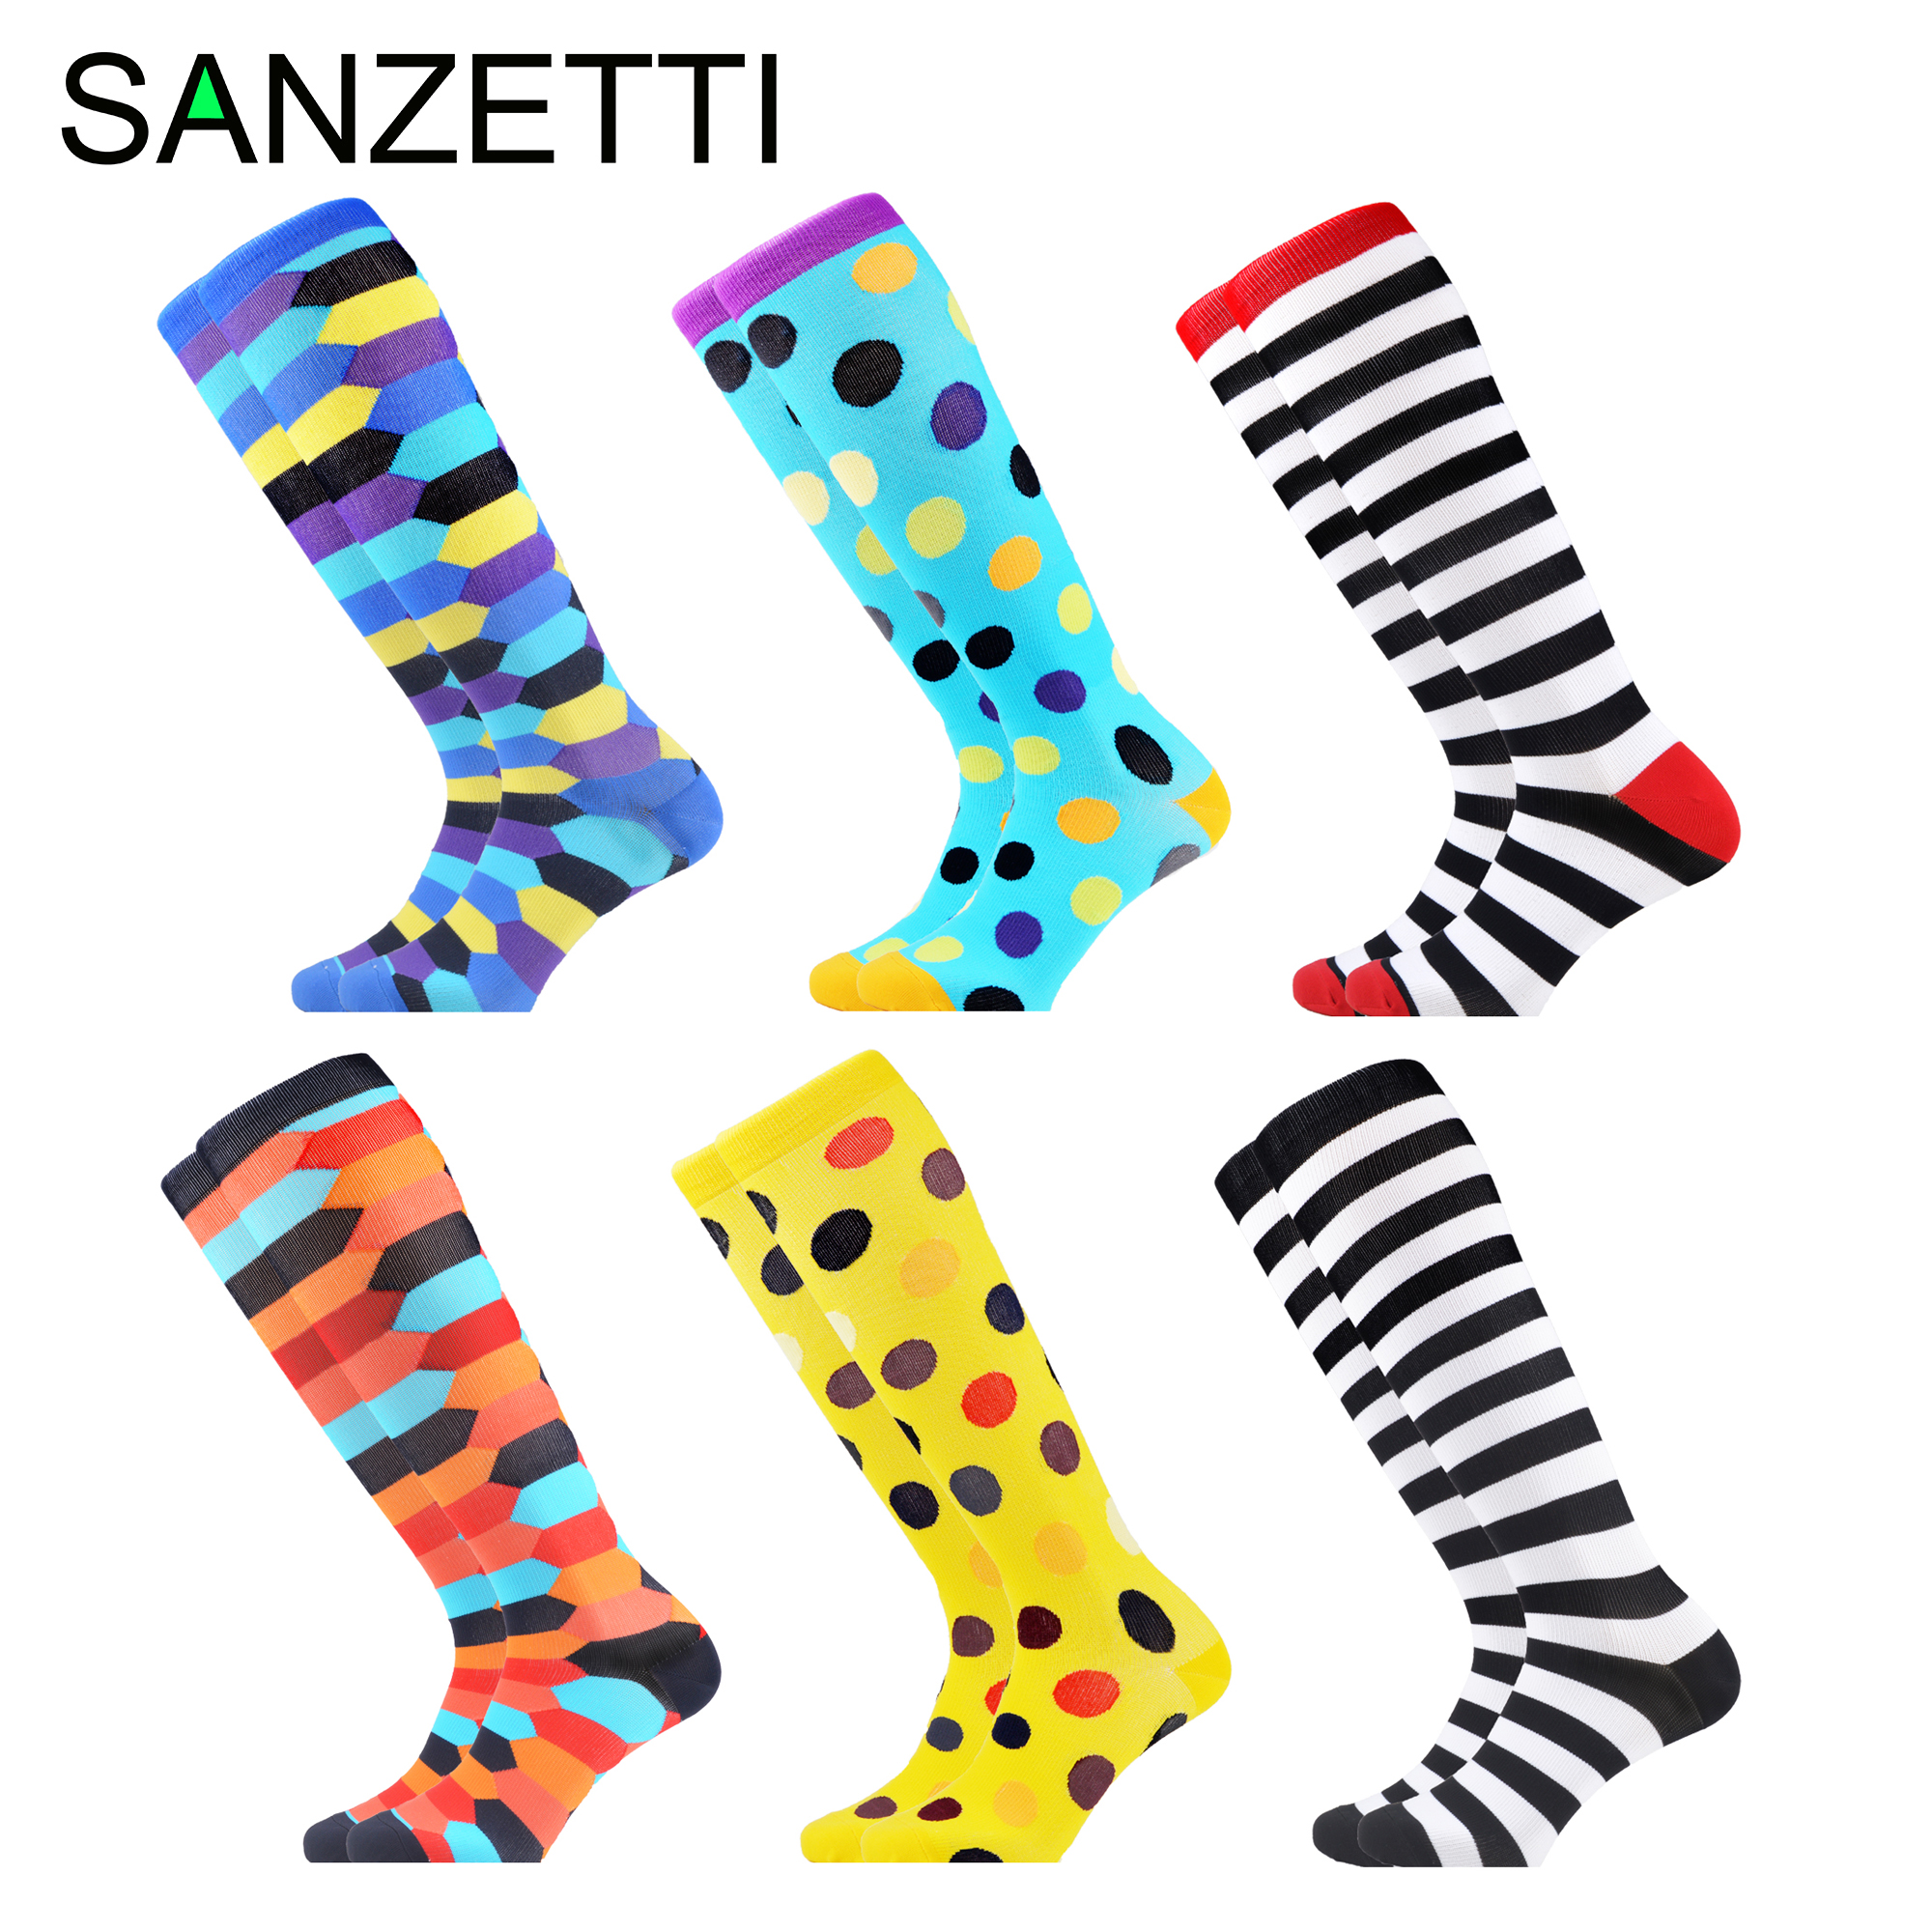 SANZETTI 6 Pairs/Lot Women's Colorful Below Knee Design Leg Support Stretch Cotton Compression Socks Anti-Fatigue Happy Socks